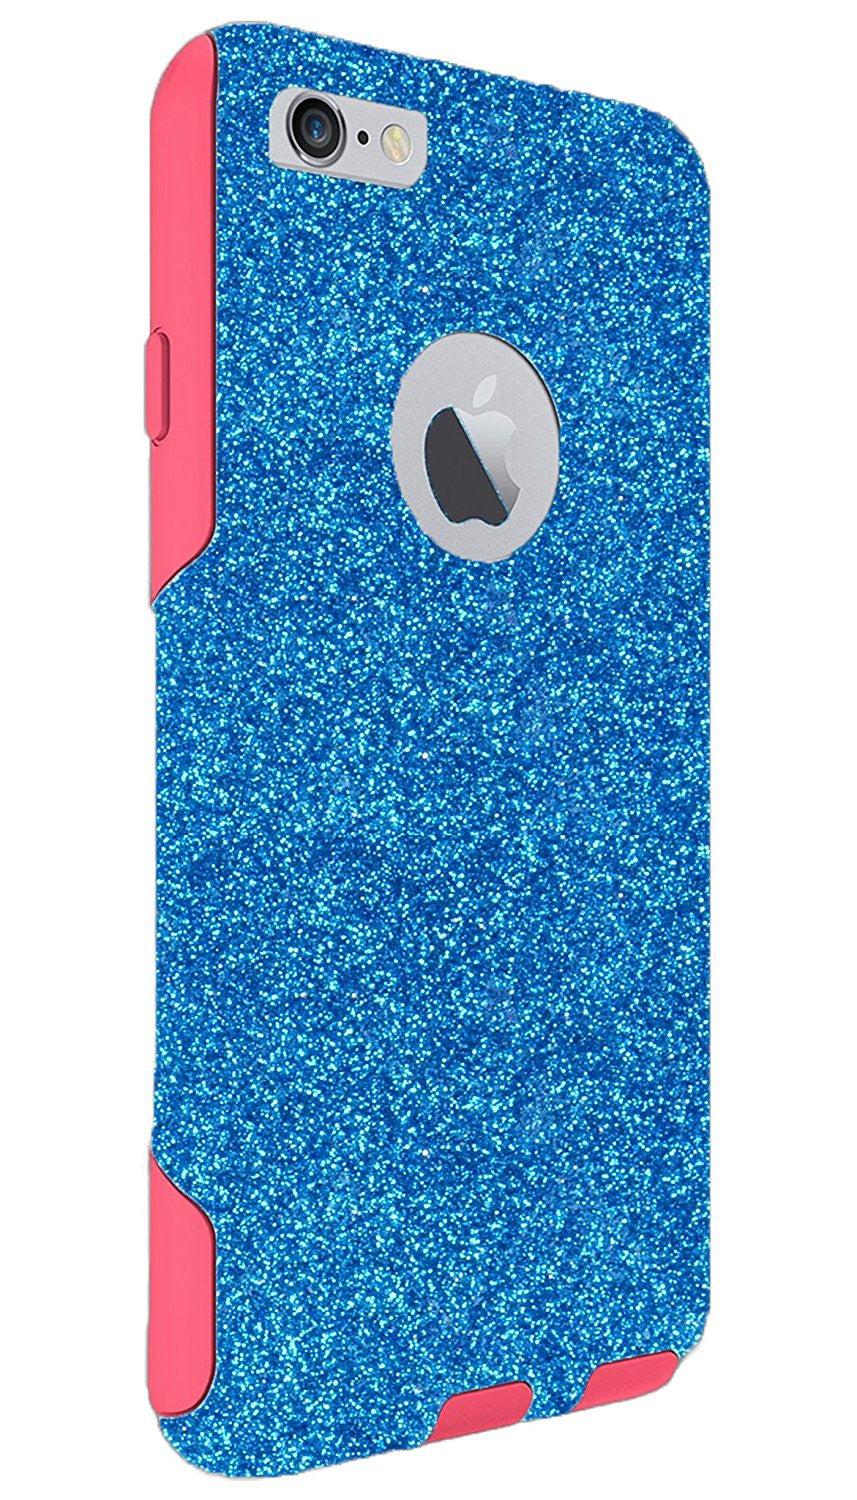 timeless design b6329 654ef OtterBox iPhone 6s Plus Case - OtterBox Commuter Series Custom Glitter Case  for iPhone 6 Plus/6s Plus, Retail Packaging - Peacock/Pink (5.5 inch)